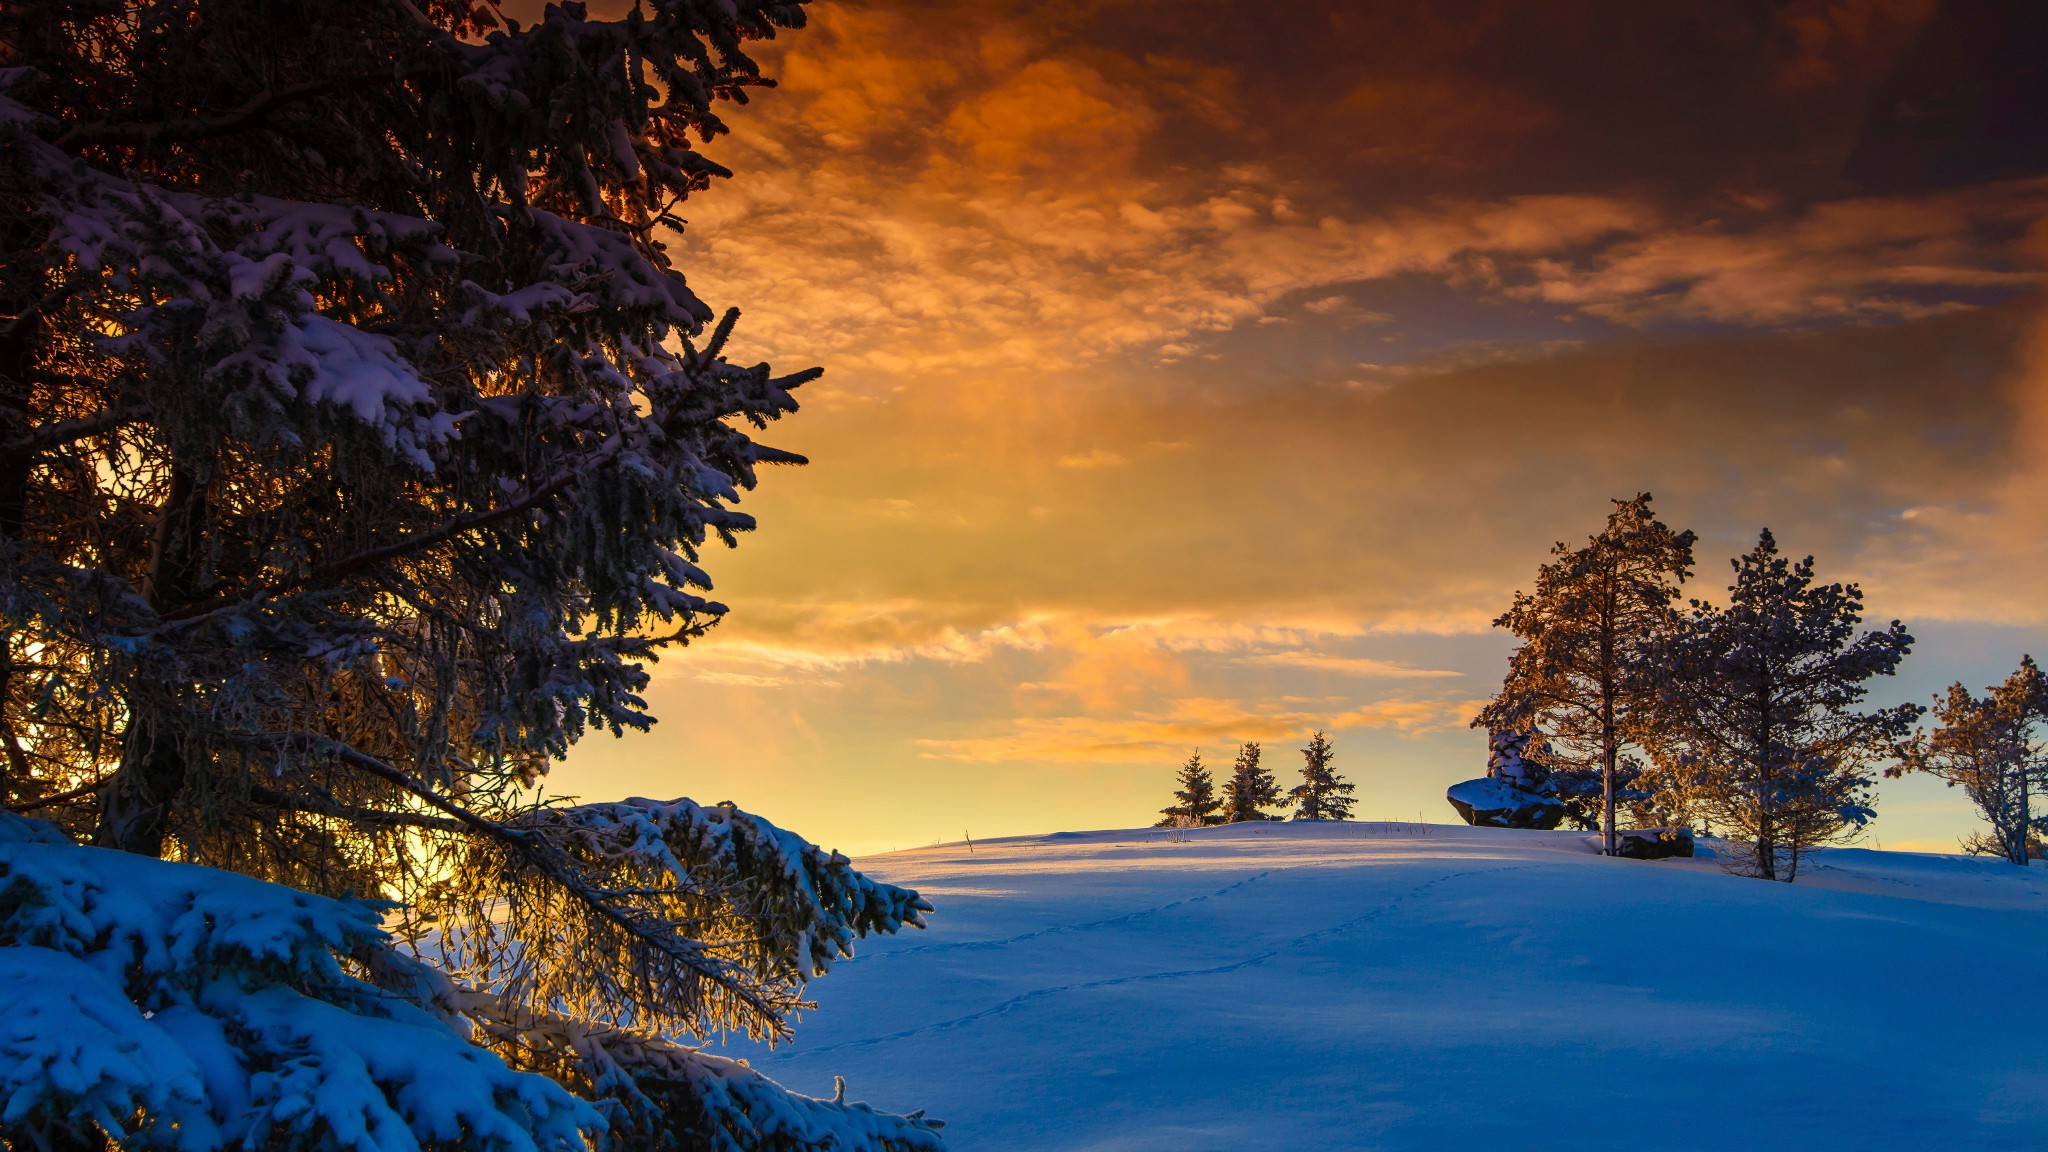 Windows 8 1 Wallpaper Hd Free Download Nature Landscape Winter Snow Norway Trees Sunset